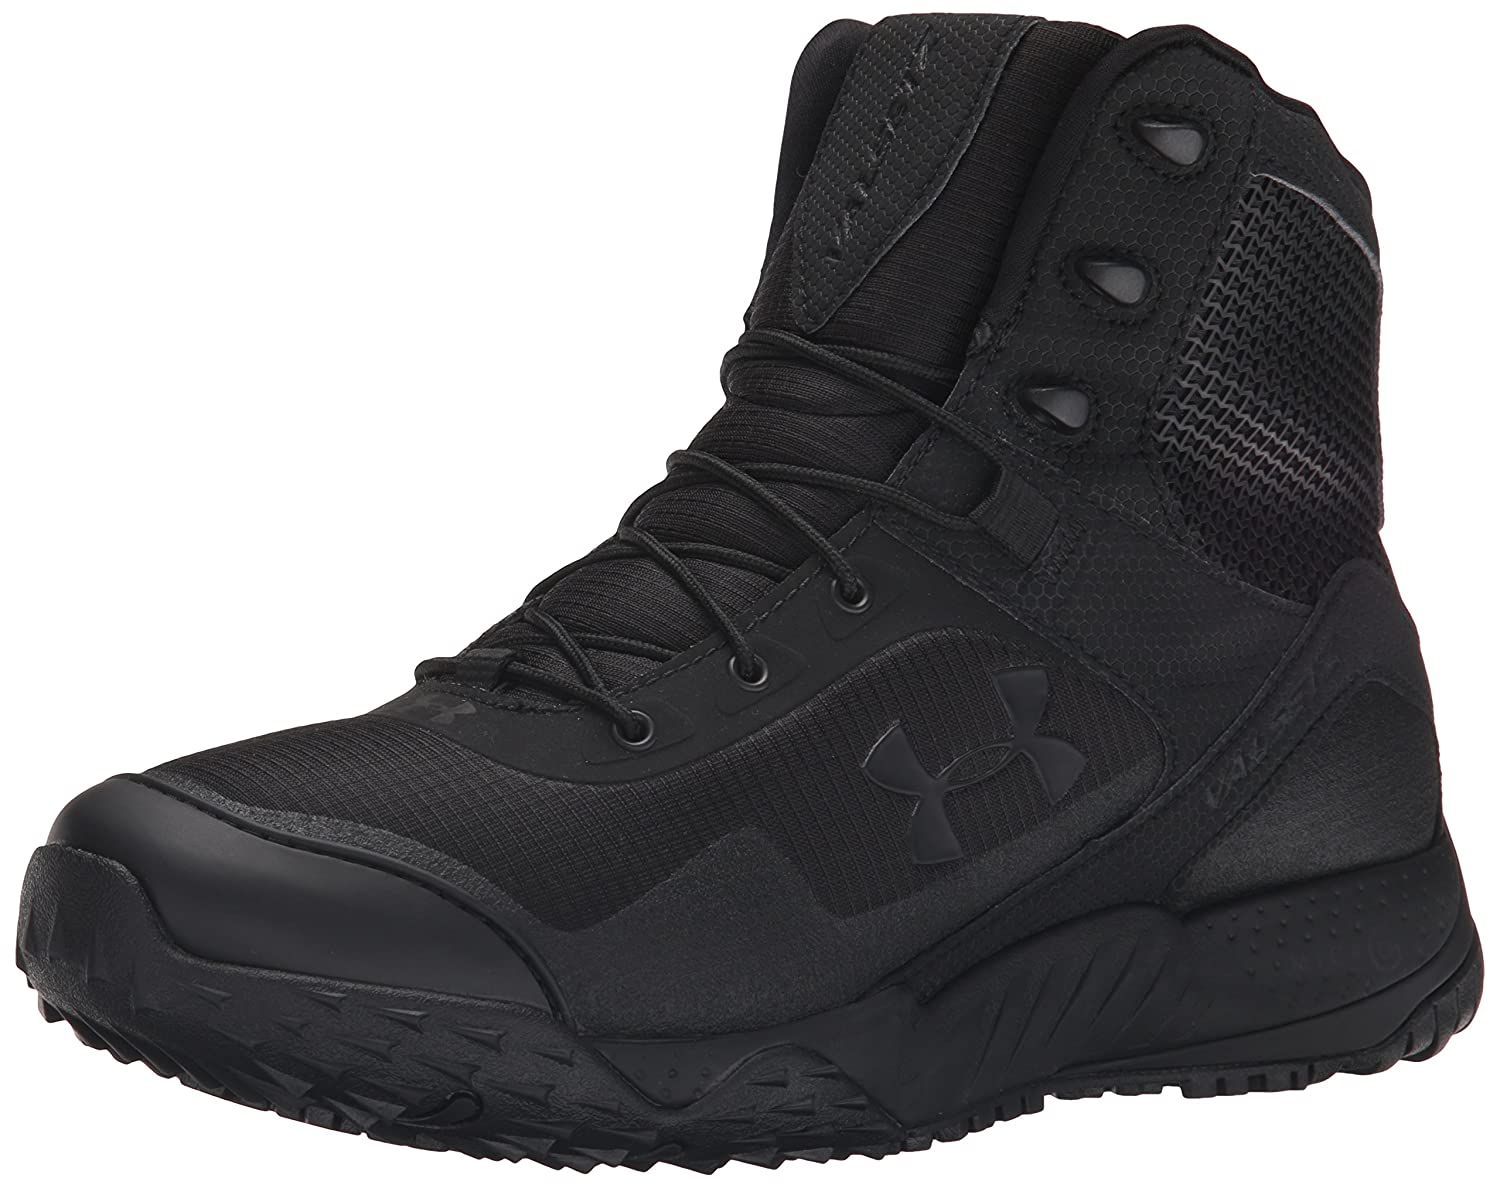 Under Armour Men 's Valsetz RTS 4e Black/Black/Black 12 4E US 1250599